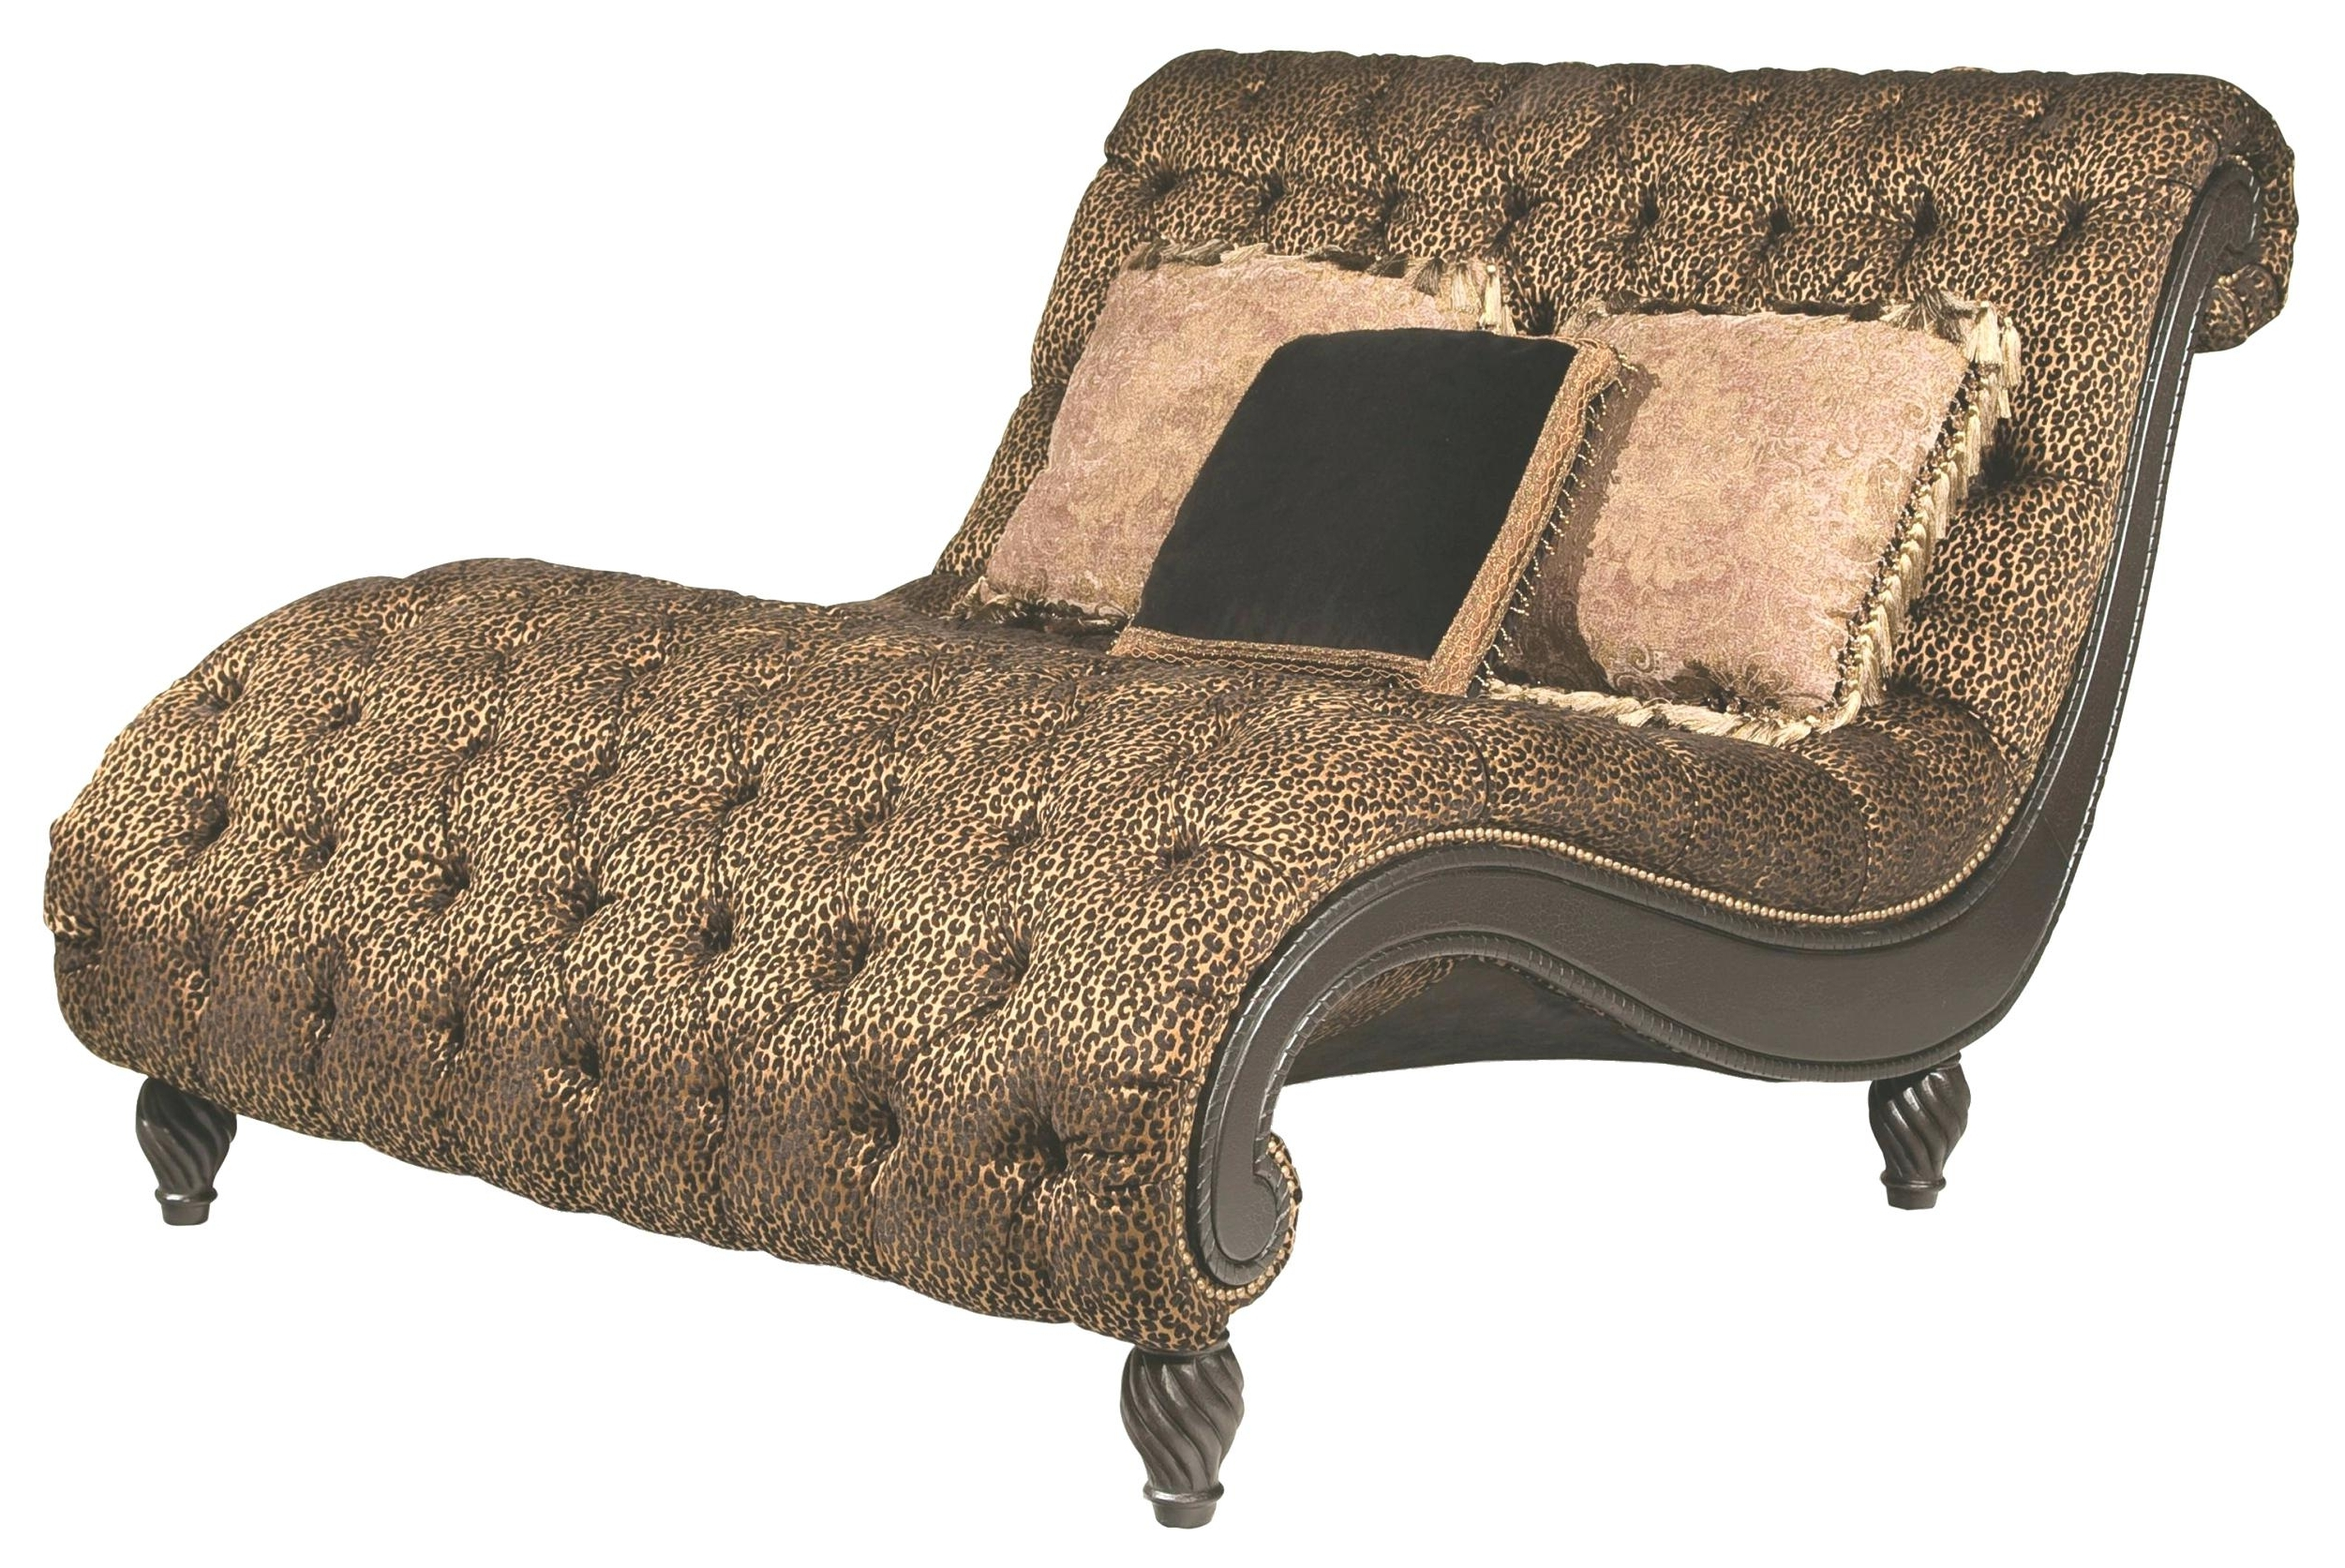 Leopard Chaise Lounges Inside Current Leopard Print Chaise Lounge Chair • Lounge Chairs Ideas (View 7 of 15)